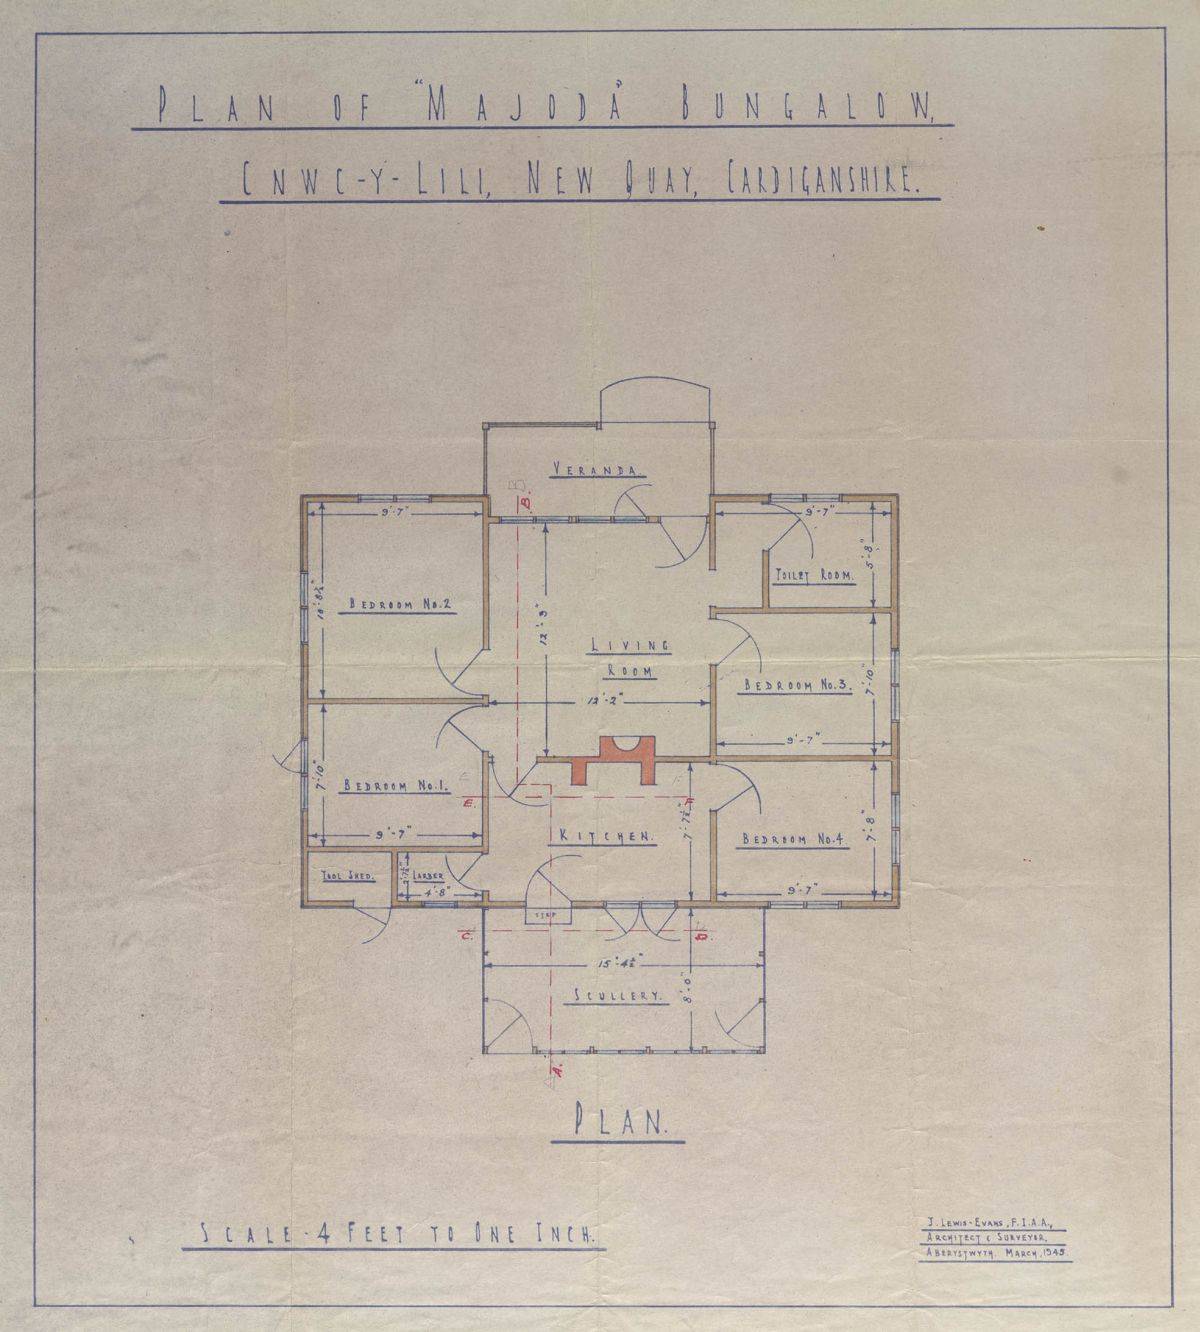 An architectural drawing of Dylan Thomas's Majoda bungalow. It was produced in March 1945 and was recently purchased by the Library.